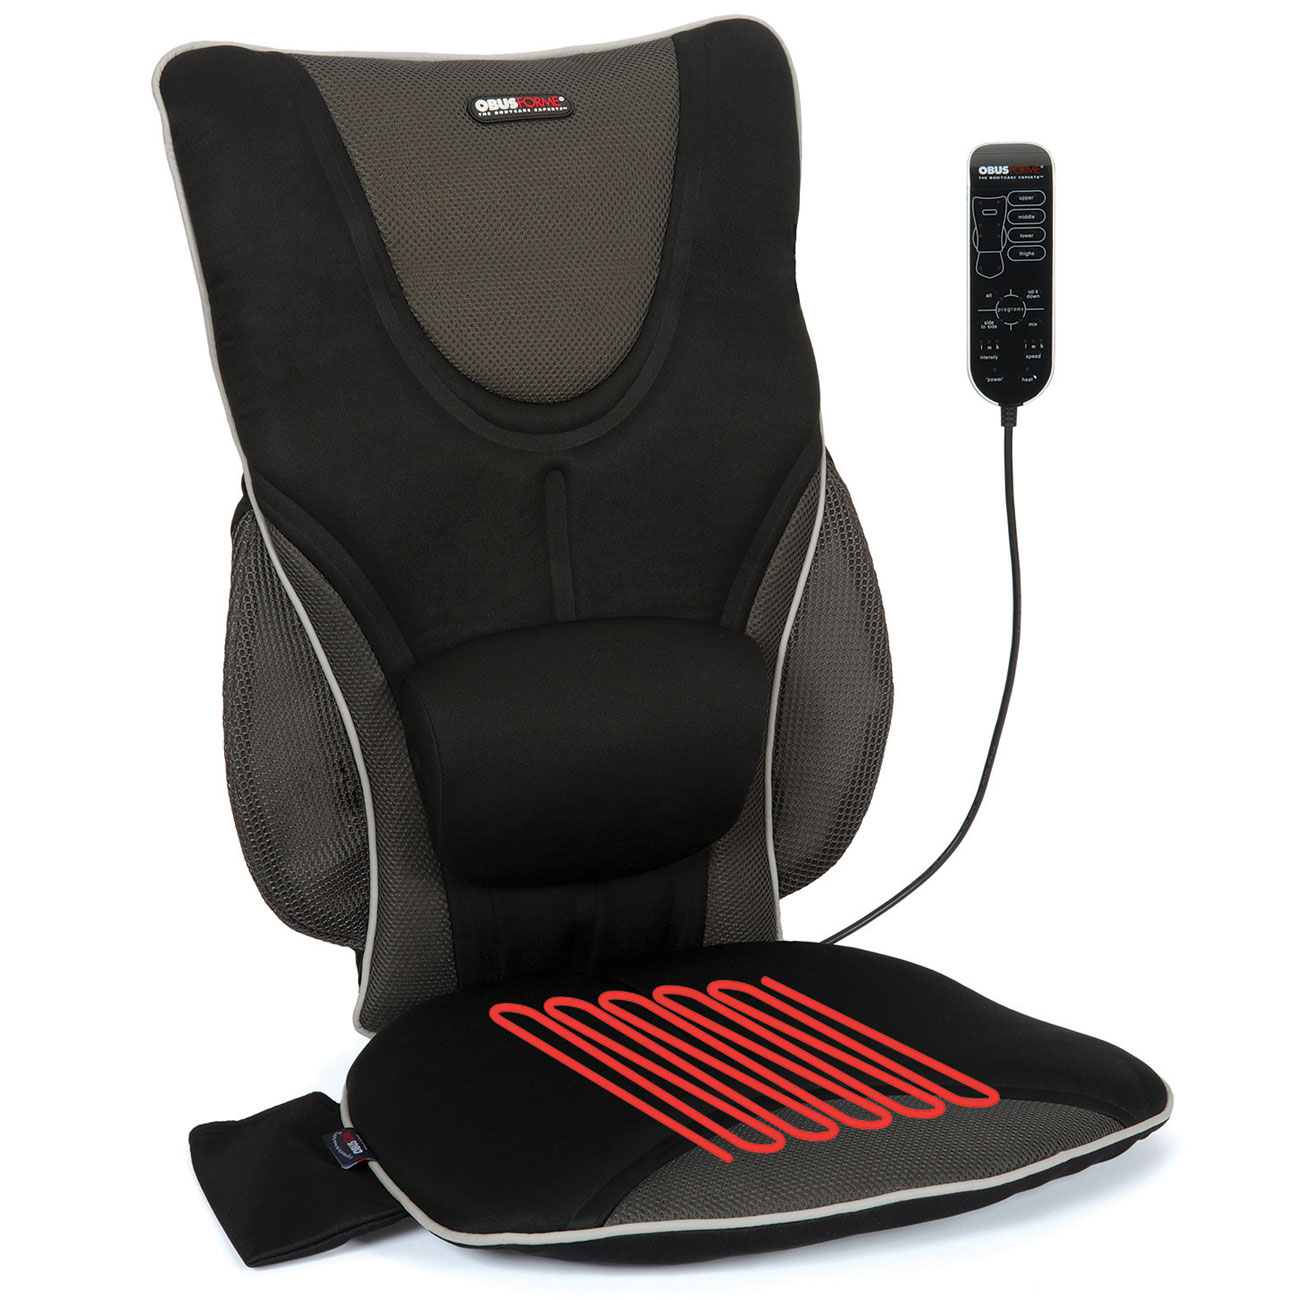 Back Support Drivers Seat Cushion with Lumbar Pad + Heat + Massage